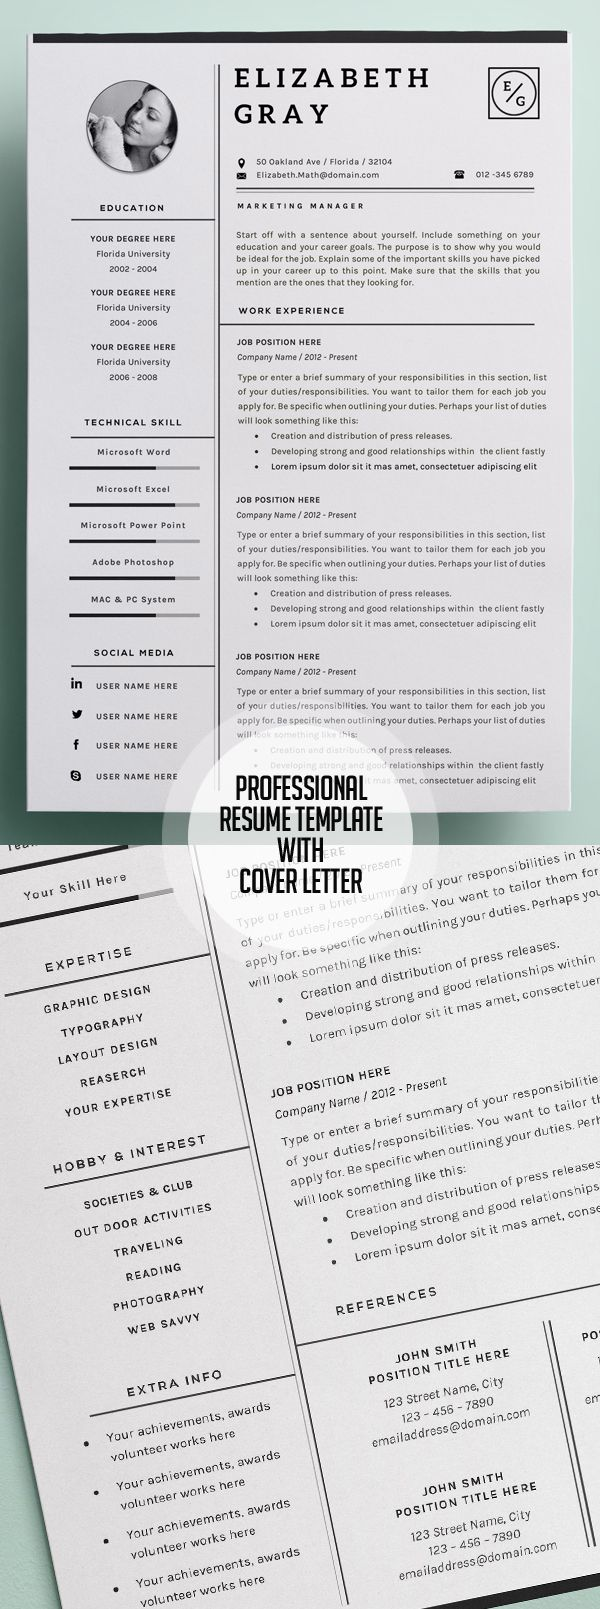 Picnictoimpeachus  Mesmerizing  Resume Ideas On Pinterest  Resume Resume Templates And  With Licious Professional And Modern Resume Template With Page Cover Cvtemplate With Endearing Browse Resumes Also Search For Resumes In Addition Language Resume And Staffing Coordinator Resume As Well As Caretaker Resume Additionally House Keeping Resume From Pinterestcom With Picnictoimpeachus  Licious  Resume Ideas On Pinterest  Resume Resume Templates And  With Endearing Professional And Modern Resume Template With Page Cover Cvtemplate And Mesmerizing Browse Resumes Also Search For Resumes In Addition Language Resume From Pinterestcom